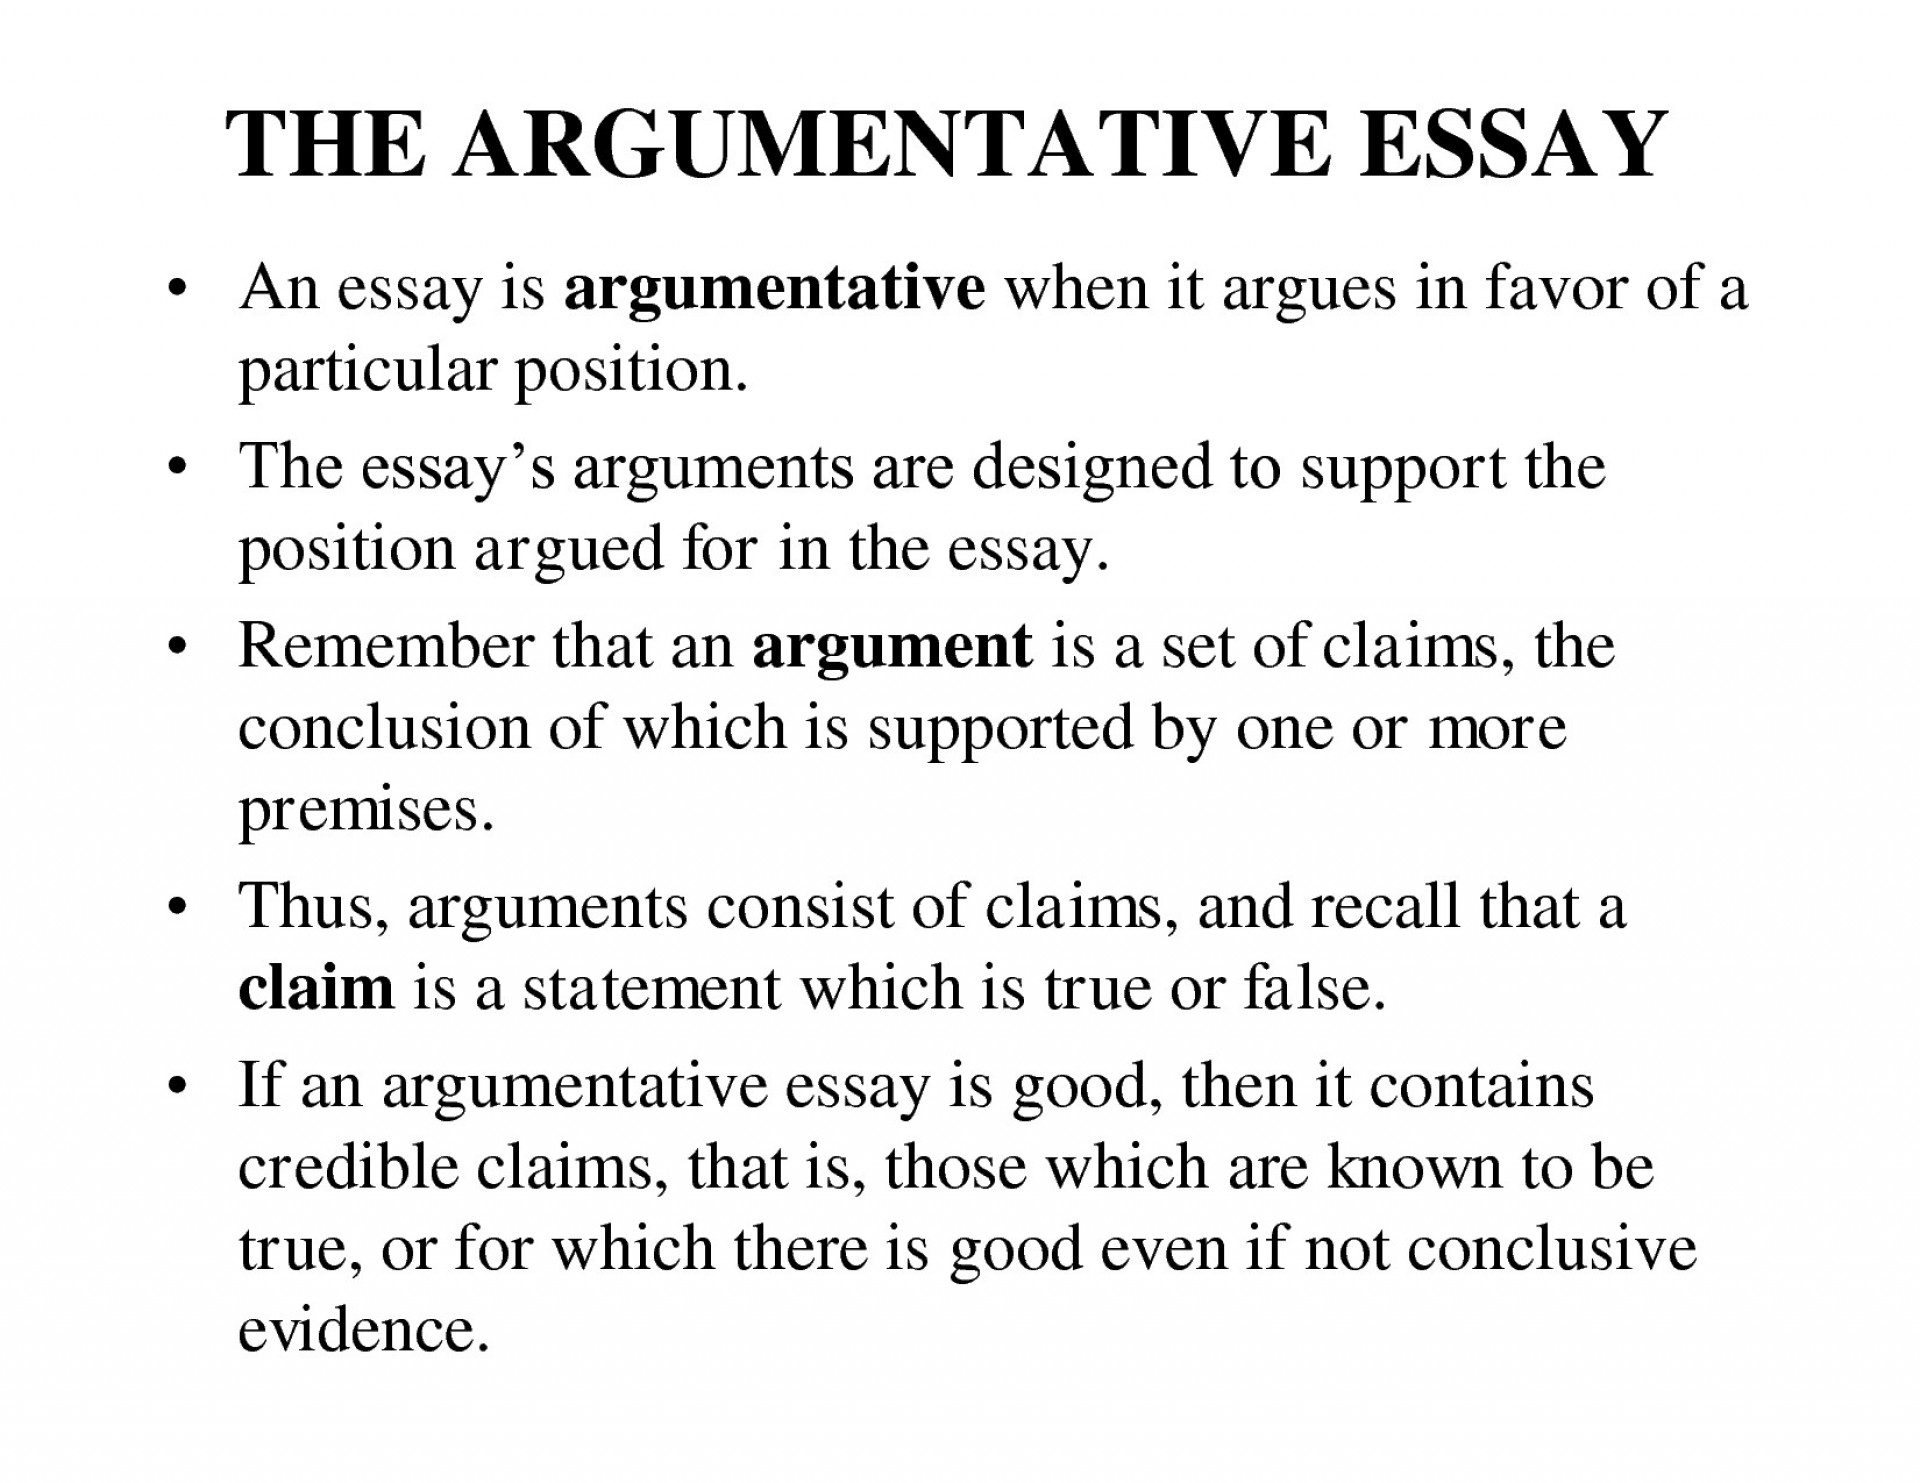 007 Essay Example Conclusion Paragraph Argumentative World Of How To Write Good Concluding For Persuasive Gse Bookbinder Co Rega Examples Argument Awesome Abortion 1920